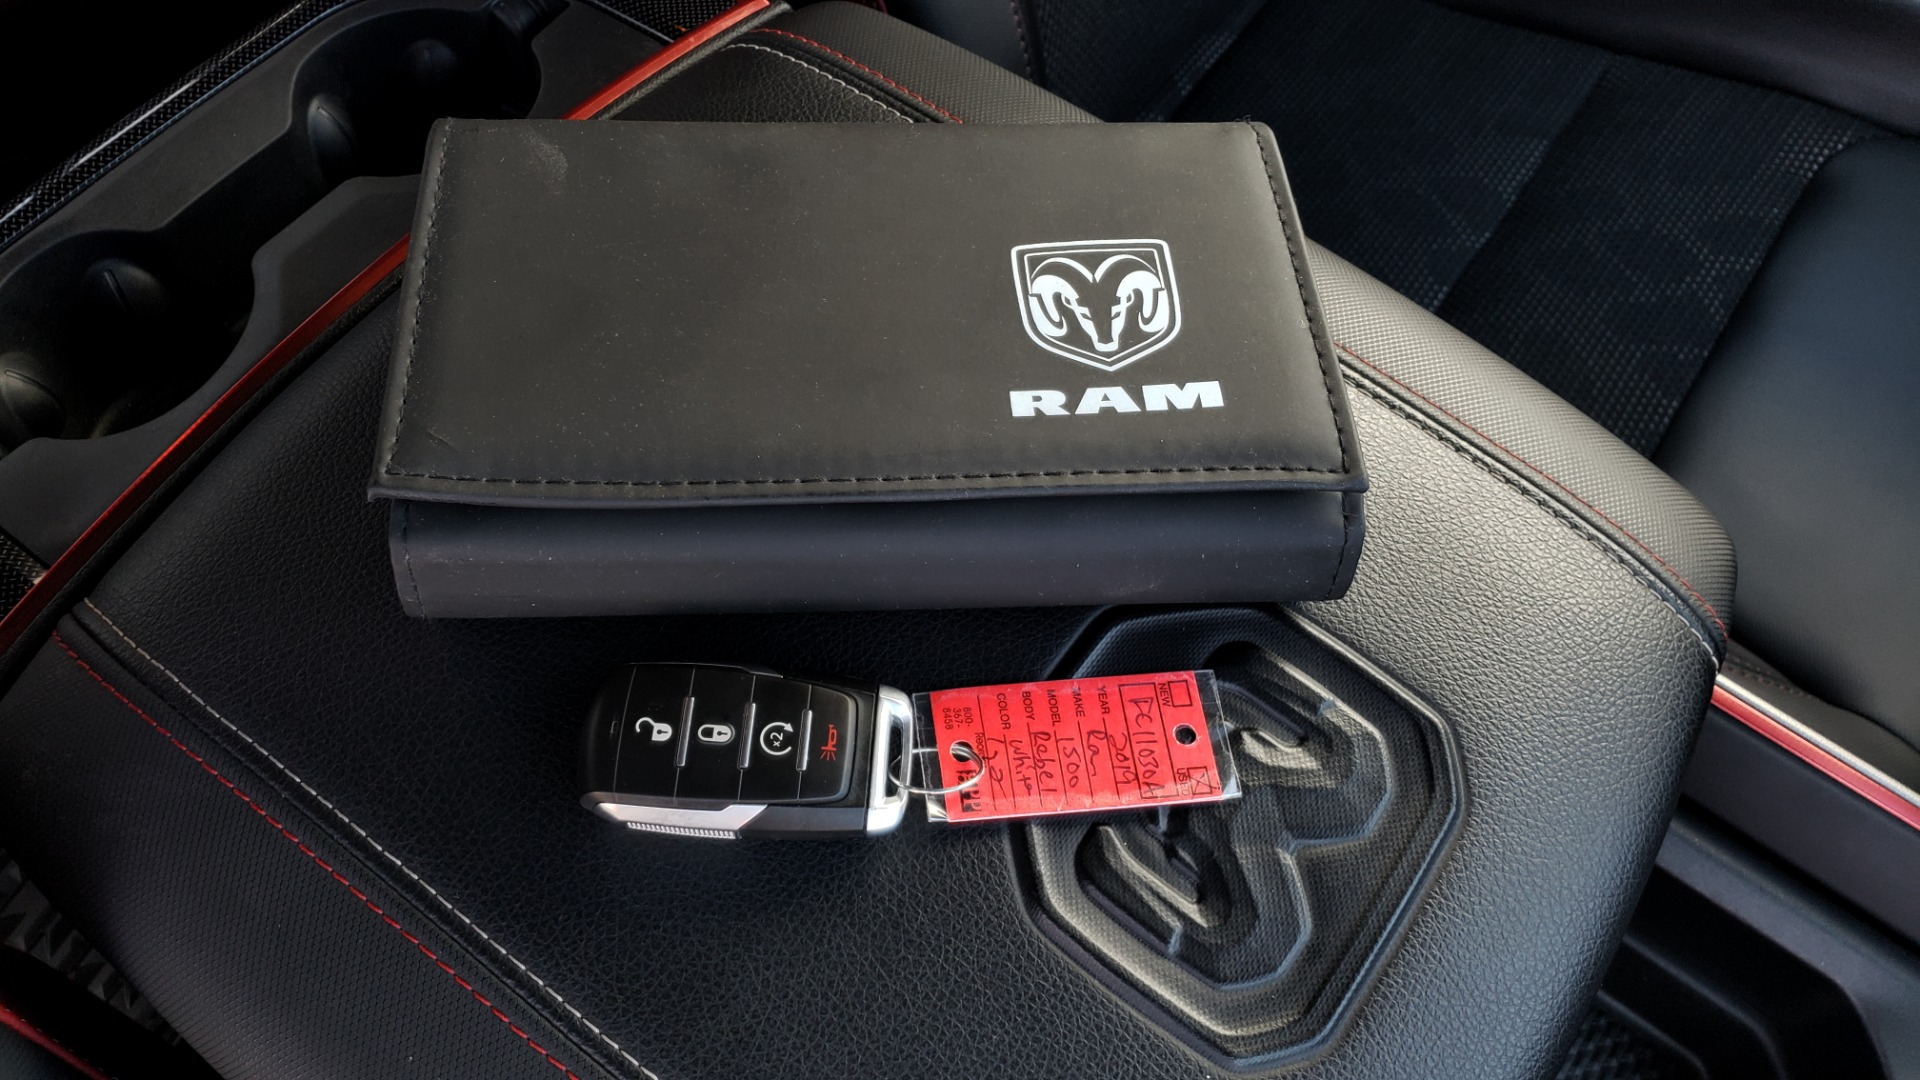 Used 2019 Ram 1500 REBEL CREWCAB 4X4 / 5.7L V8 HEMI / 8-SPD AUTO / REARVIEW for sale Sold at Formula Imports in Charlotte NC 28227 97